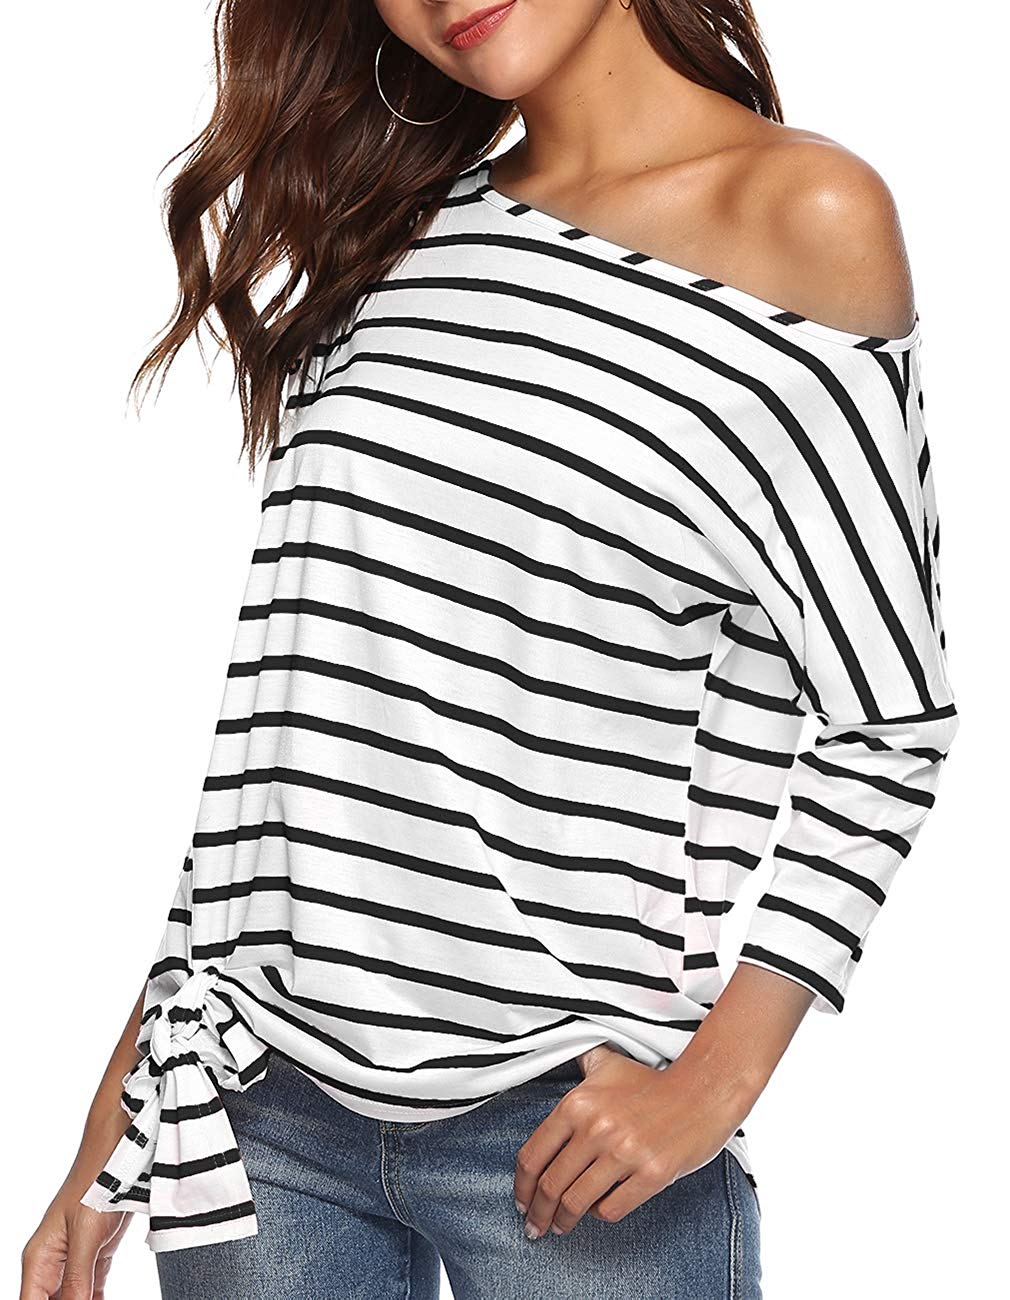 f18bb0af4c3 Get Quotations · Defal Womens Sexy Oblique Off Shoulder 3/4 Sleeve Colorful  Striped Tunic T-Shirt